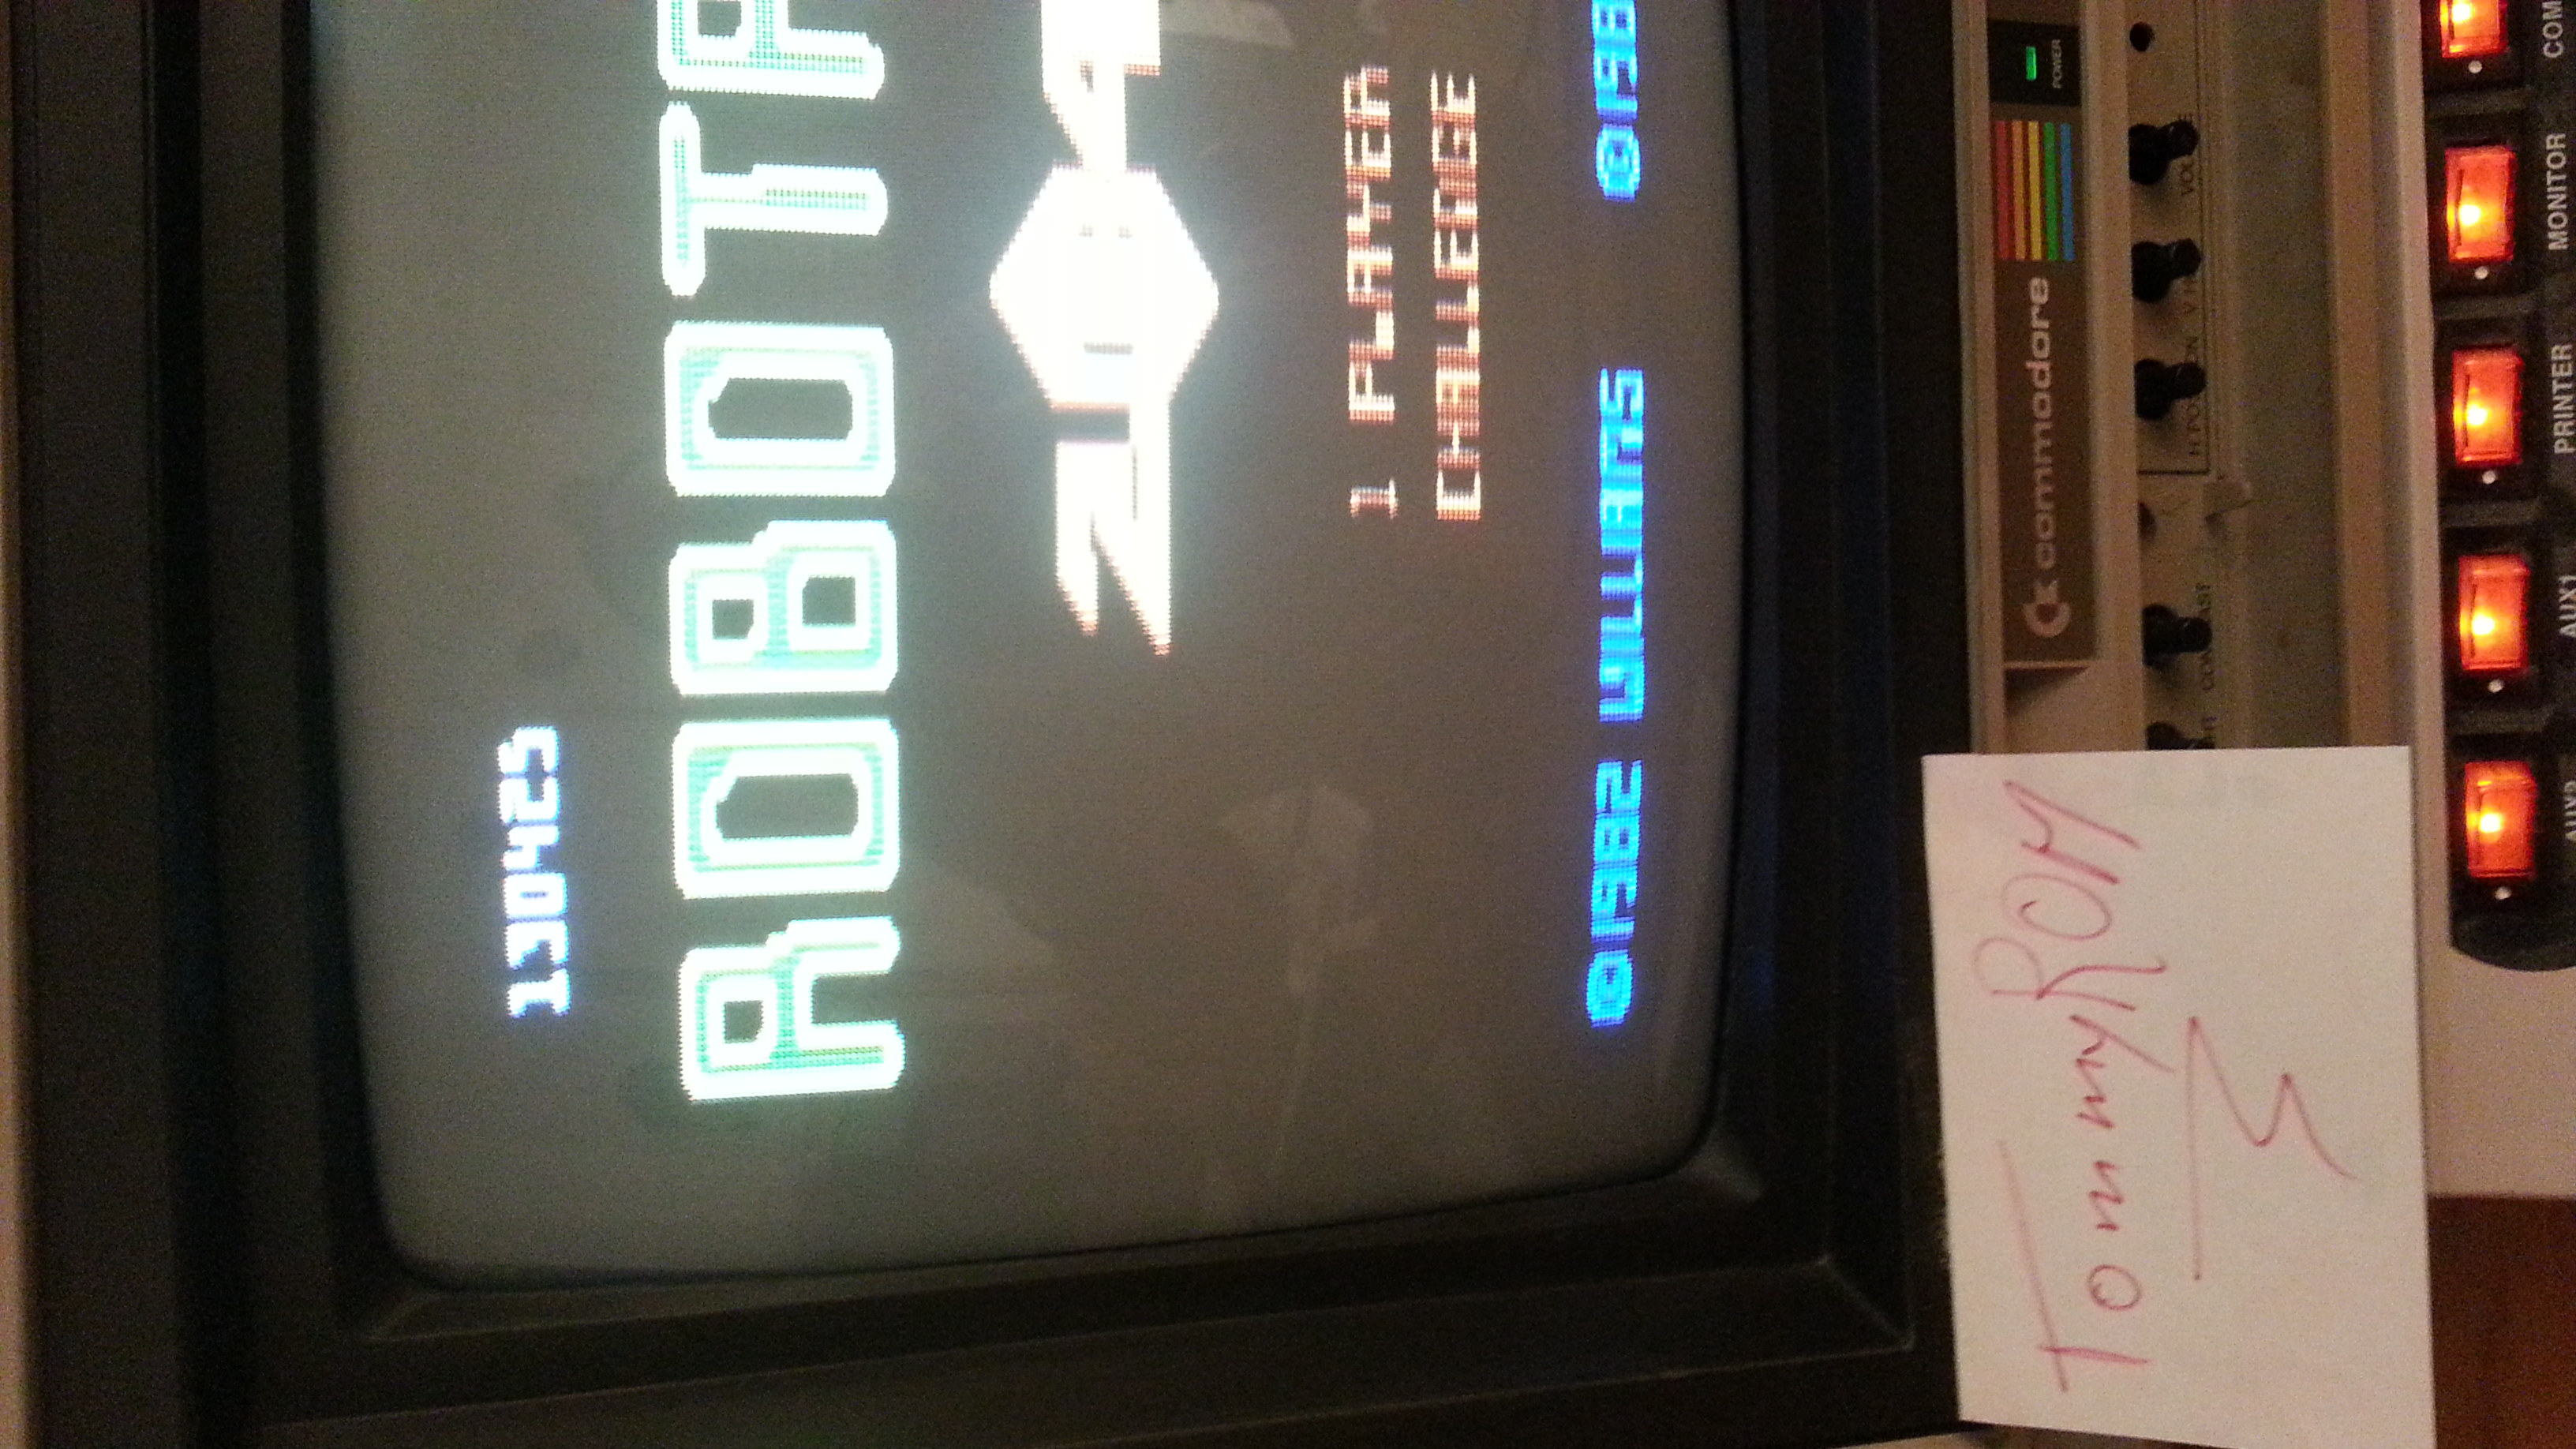 TommyROM: Robotron 2084: Challenge (Atari 7800) 130,425 points on 2014-04-15 22:37:04